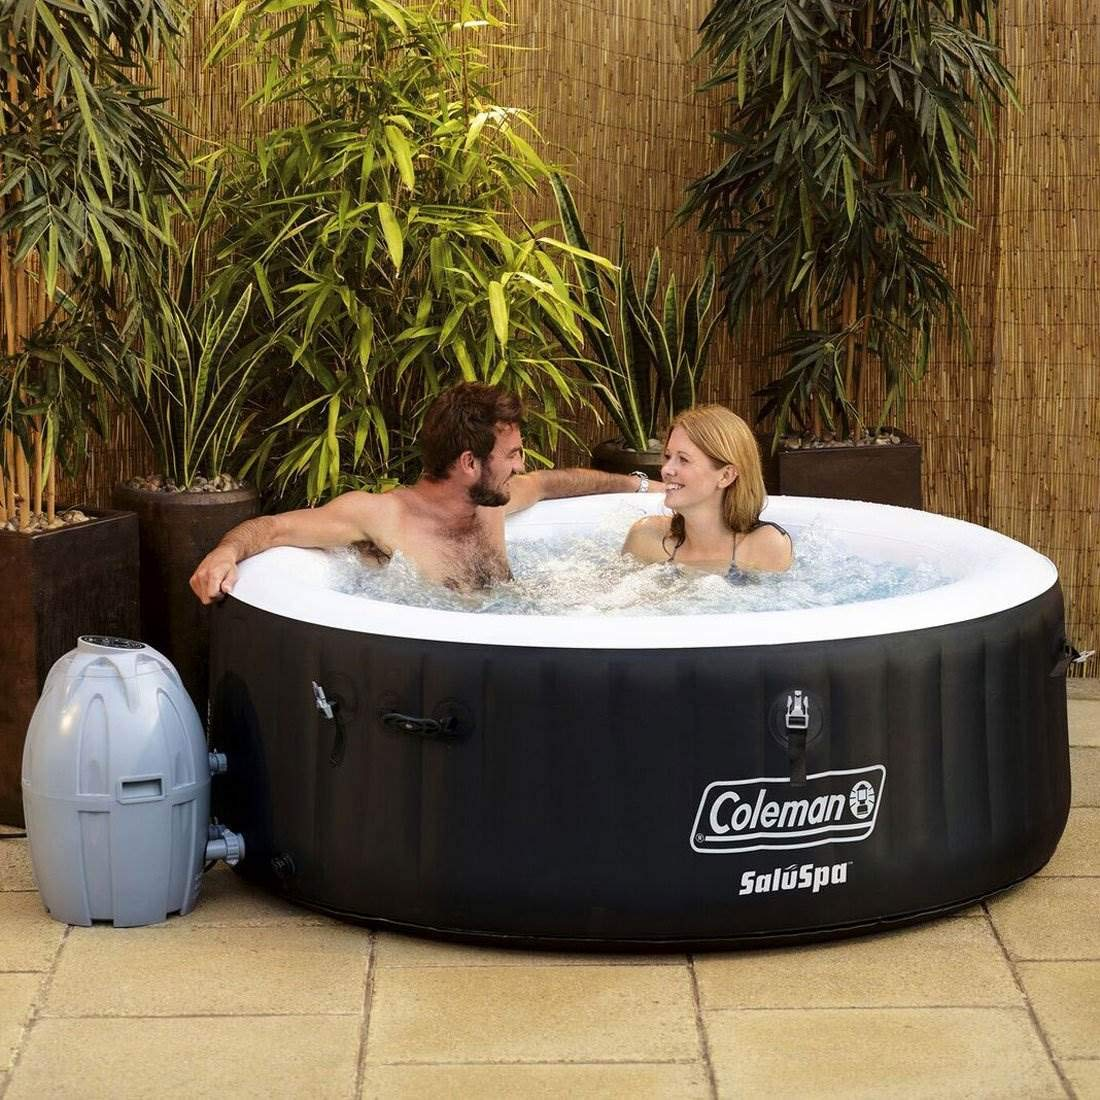 Coleman Portable Spa Inflatable 4-Person Hot Tub